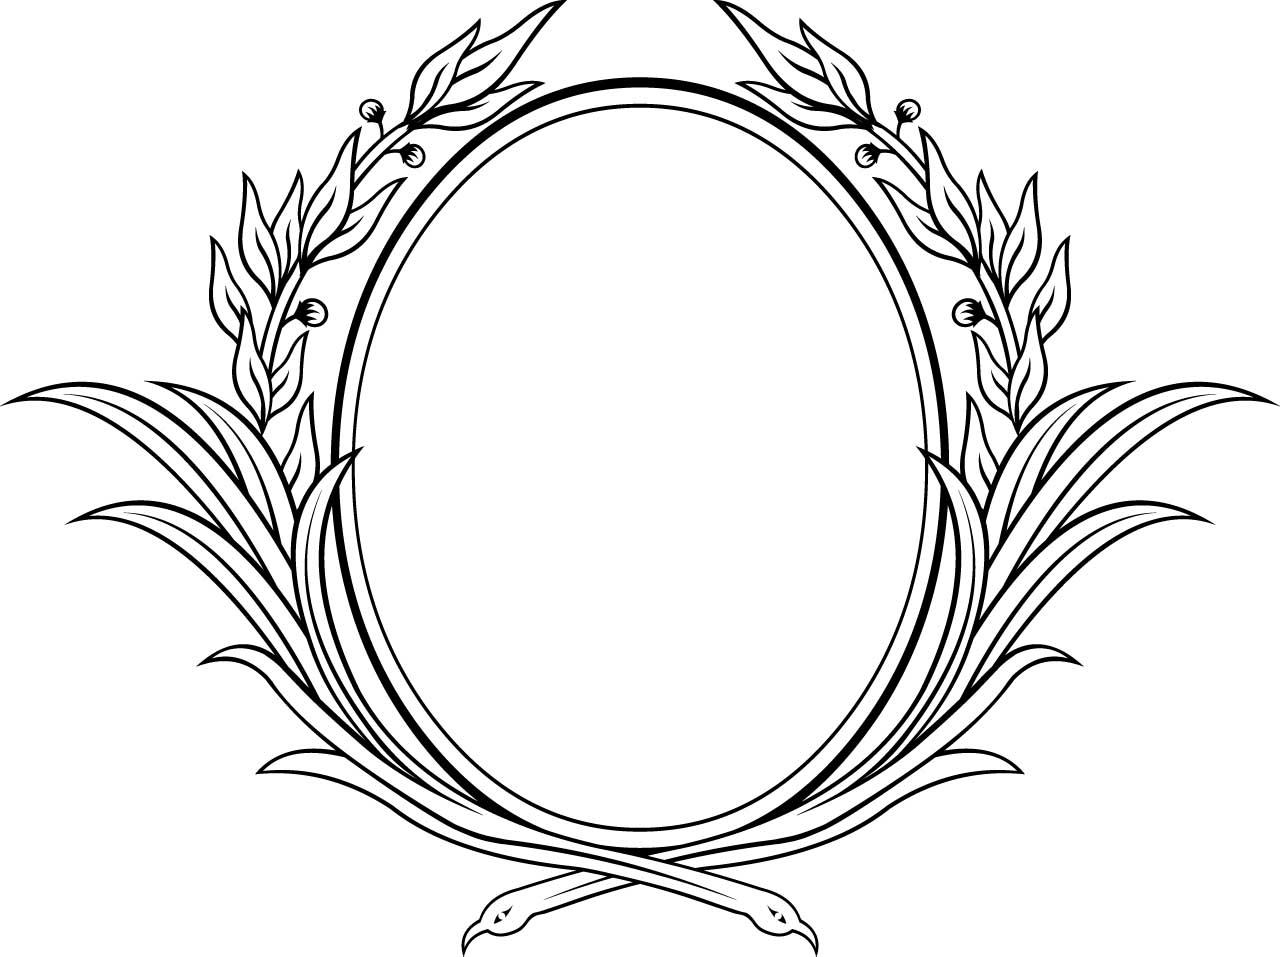 1280x957 Decorative Oval Floral Vector Frame Free Download